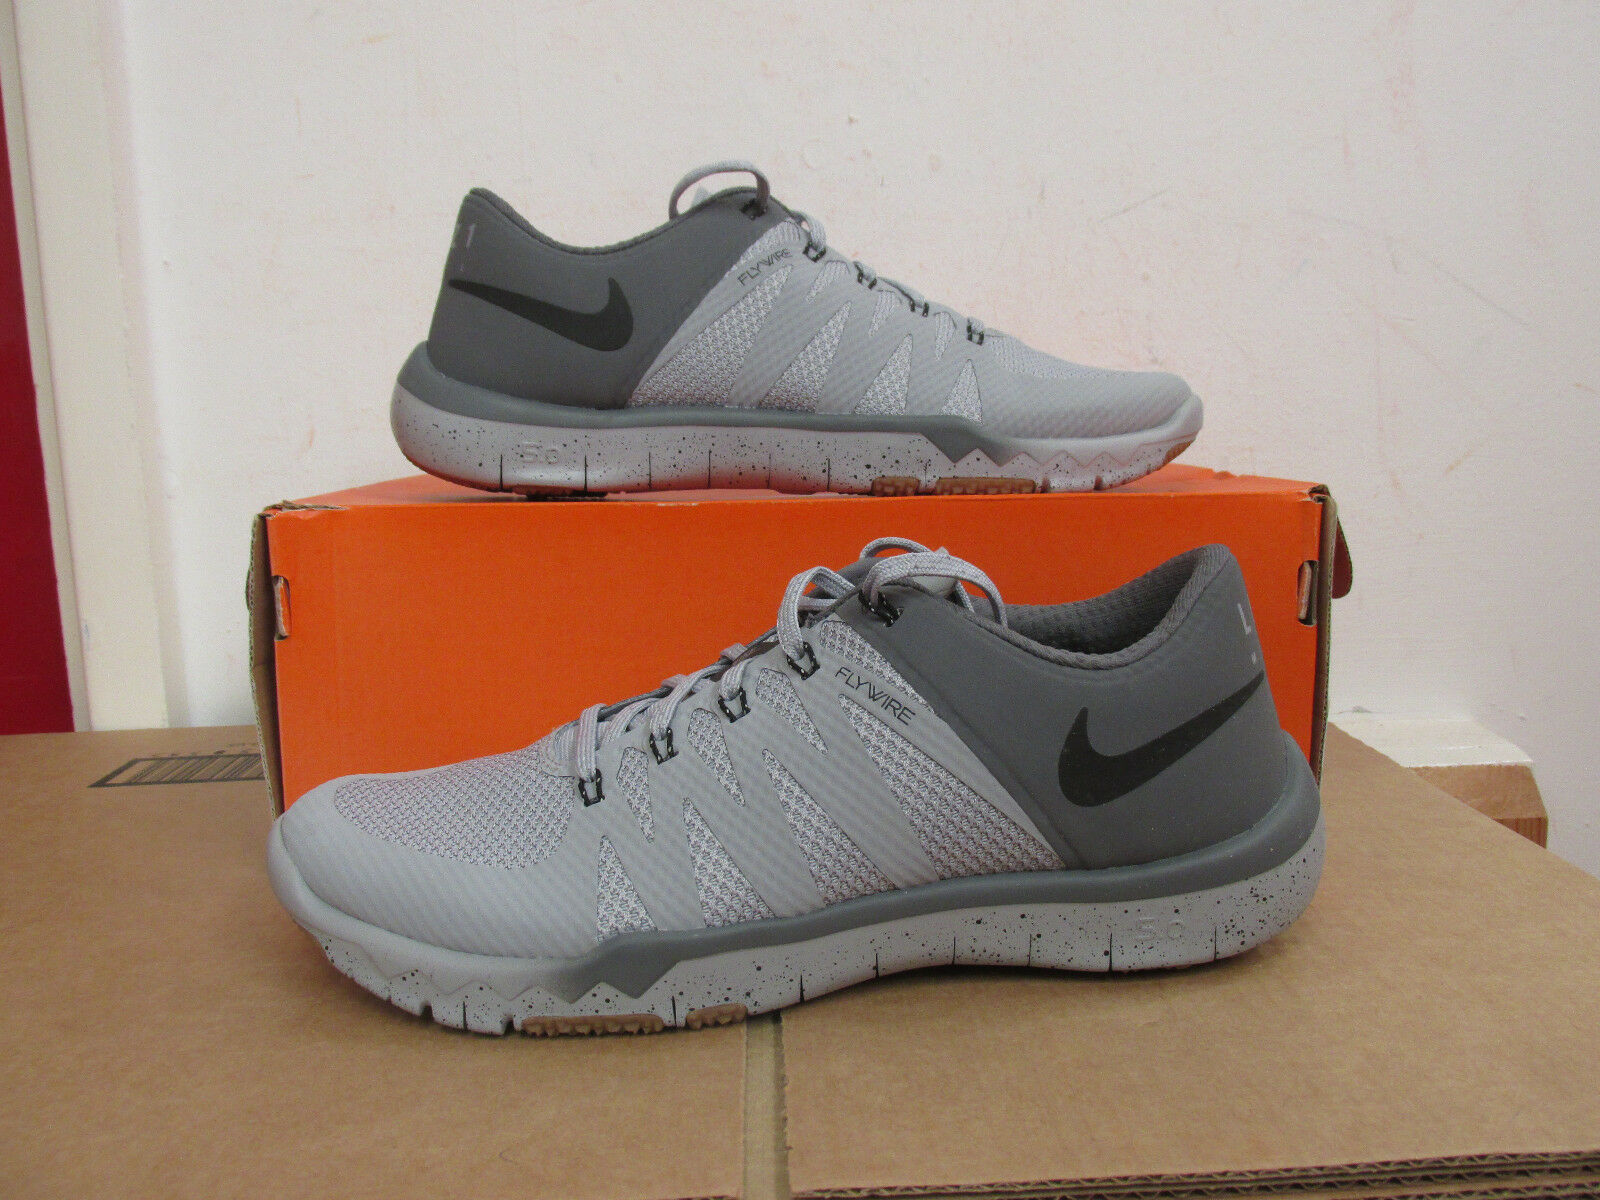 Nike Lab Free Tr 5.0 V6 Mens Running Trainers 799457 001 Sneakers Shoe CLEARANCE